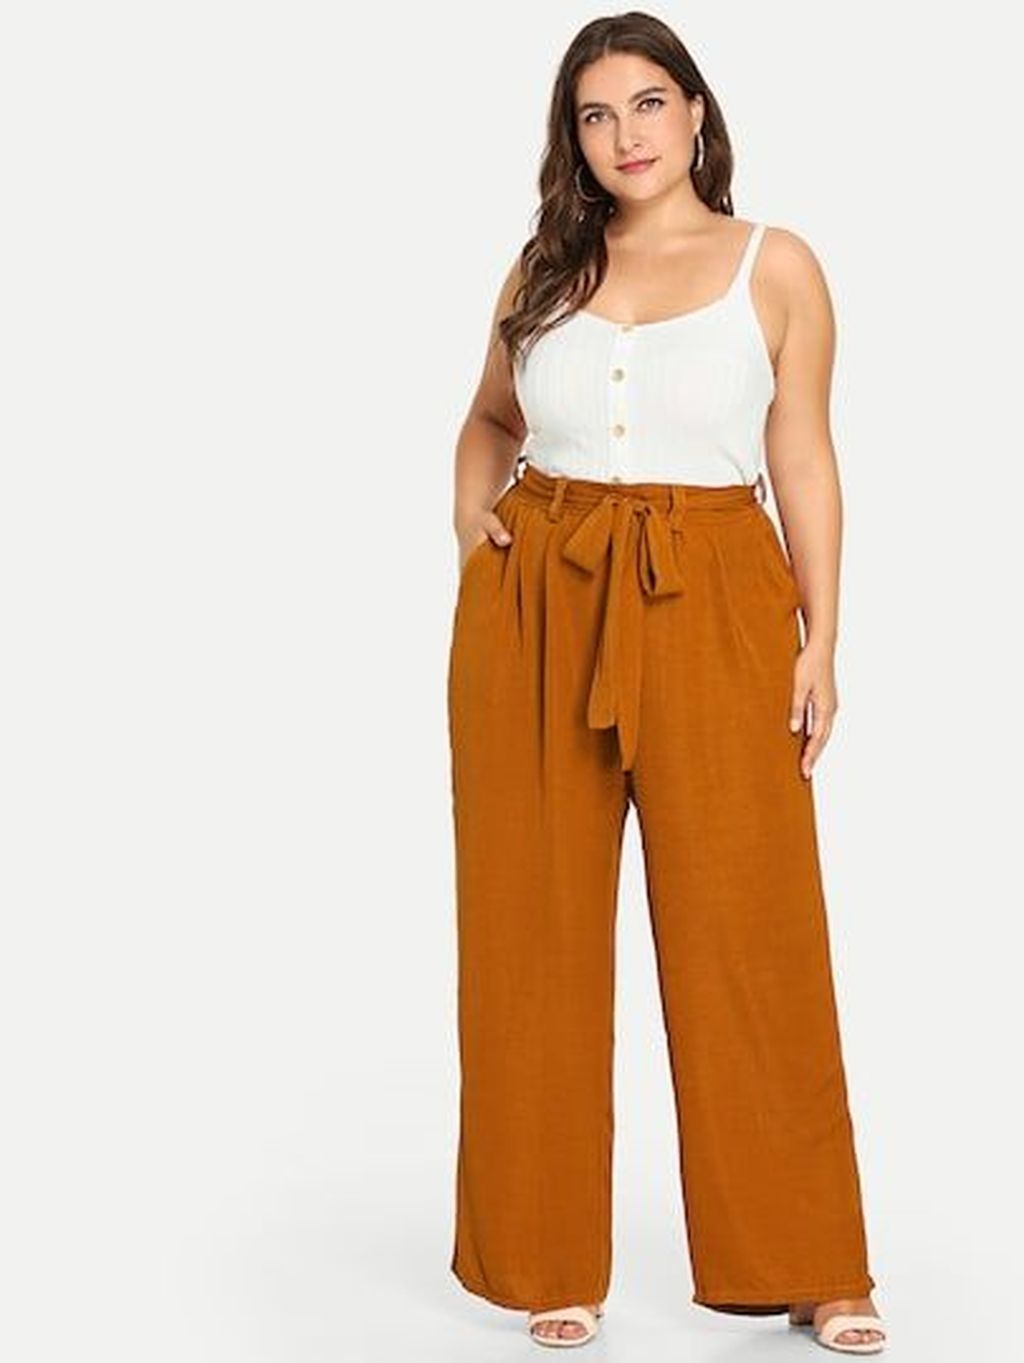 50 Gorgeous High Waister Pants Outfit Looks That Are Super Trendy